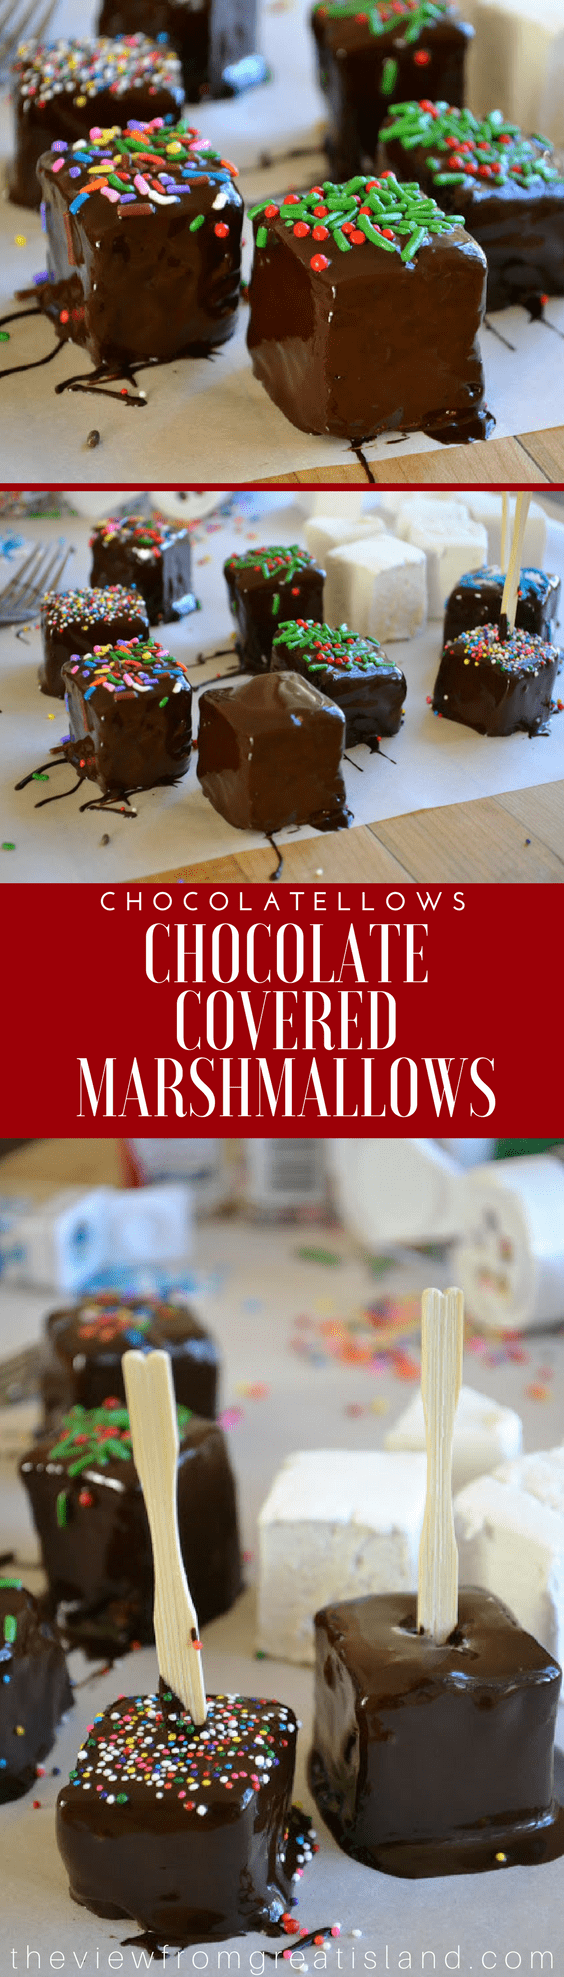 Chocolatellows are festive little chocolate covered marshmallows that are super easy to make. They'll turn plain hot chocolate into a decadent treat. #marshmallows #homemademarshmallows #chocolatemarshmallows #homemadecandy #hotcocoa #hotchocolate #Christmas #dessert #sprinkles #chocolate